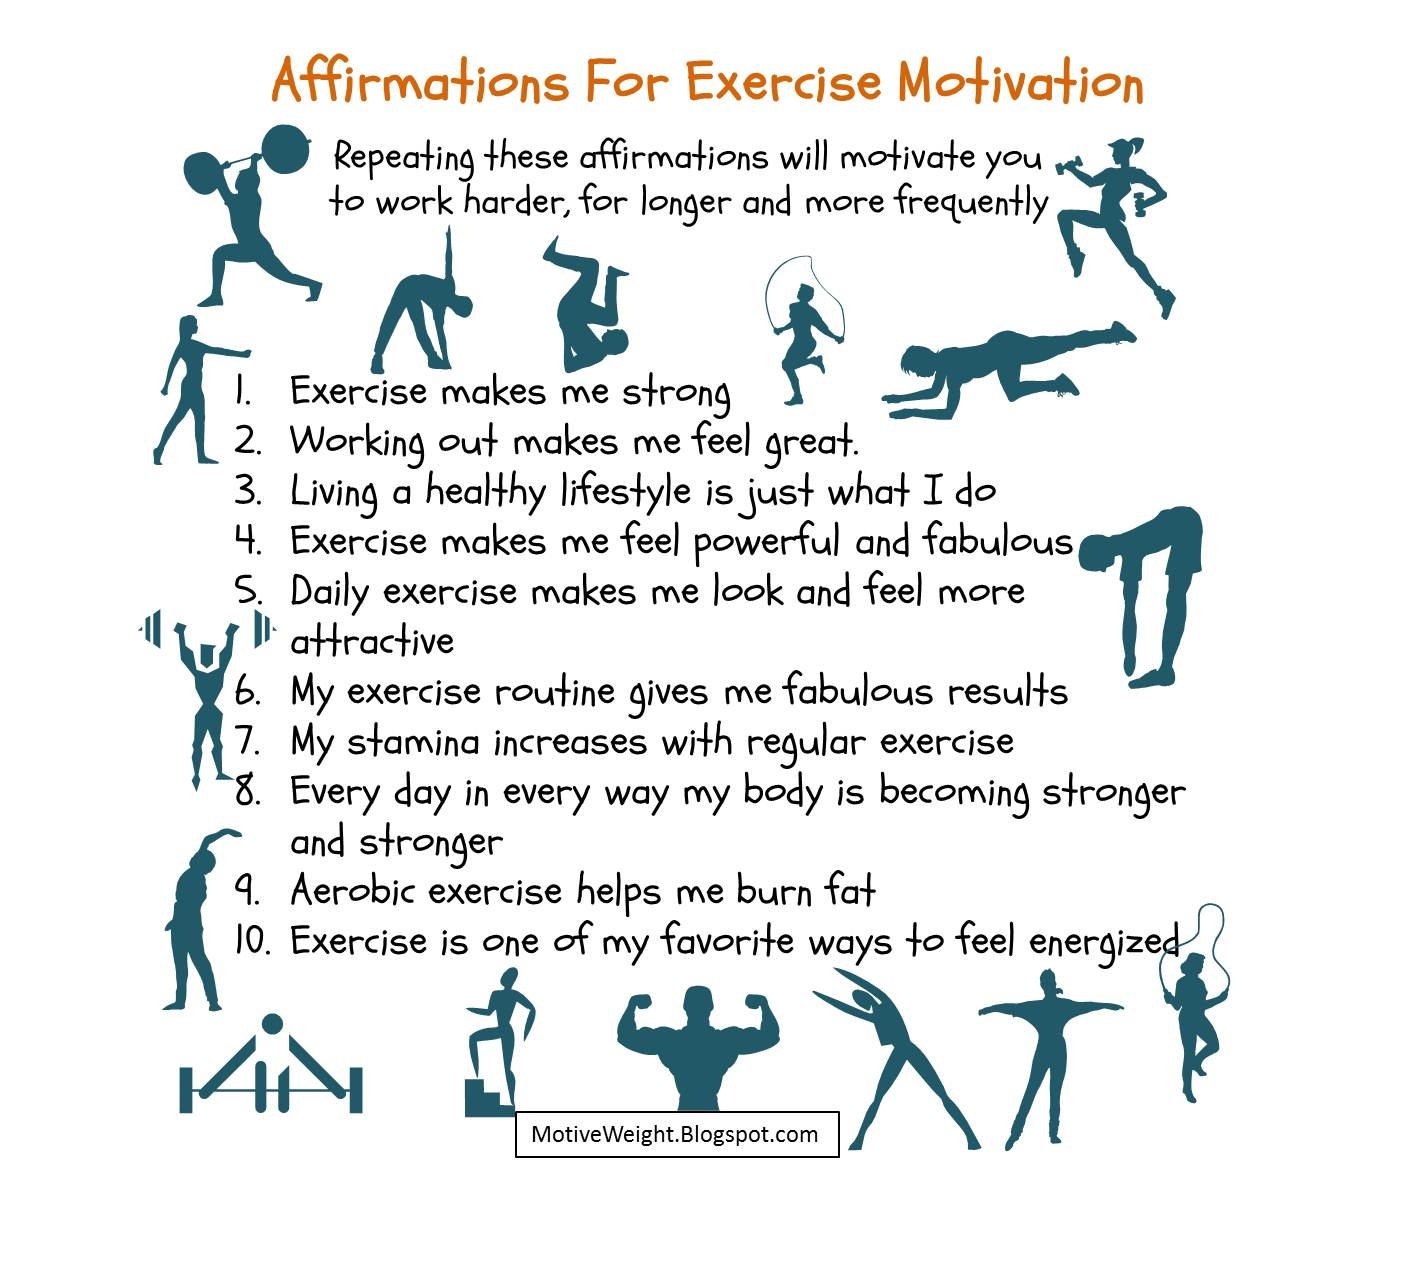 http://4.bp.blogspot.com/-M7Ah8Gceu8E/UHIhOzqVqfI/AAAAAAAAHe4/0tn4PGsINGg/s1600/Affirmations%20for%20exercise%20motivation.jpg